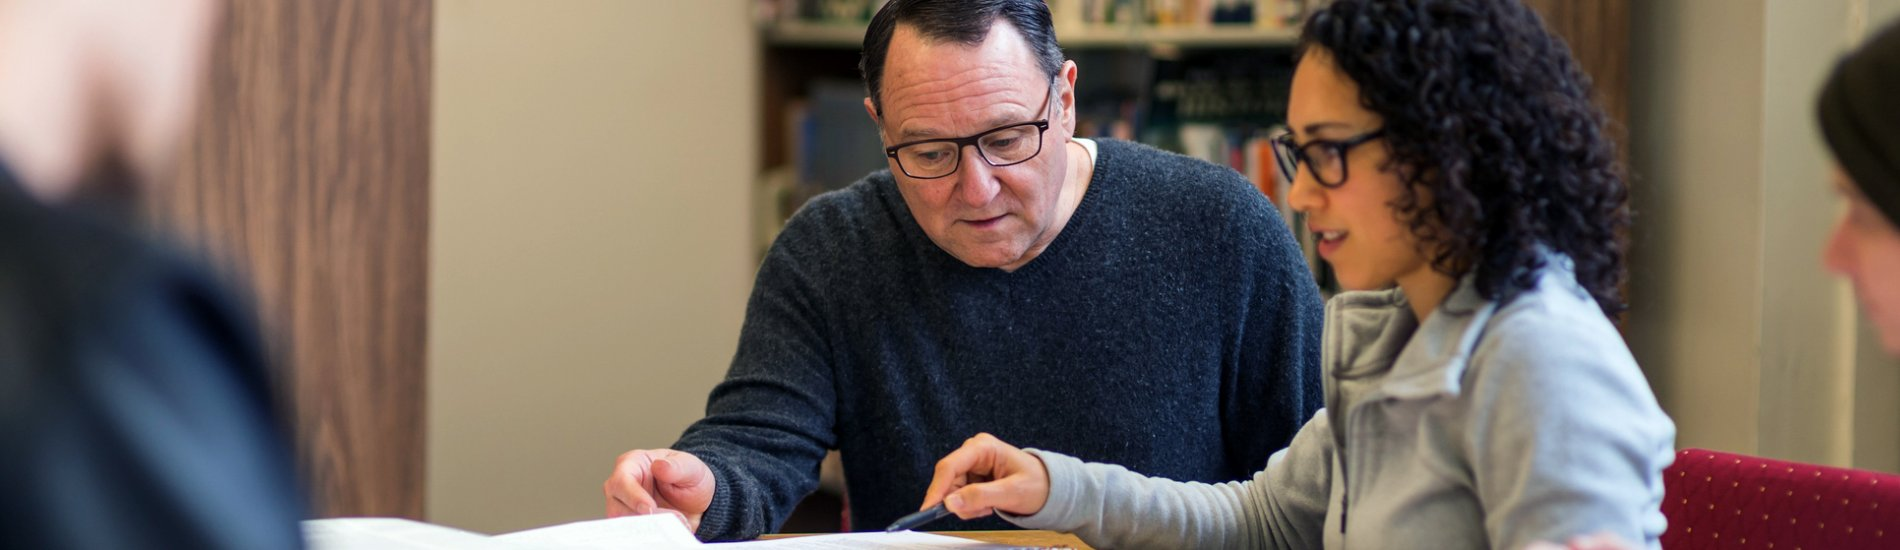 Mentor studying with students